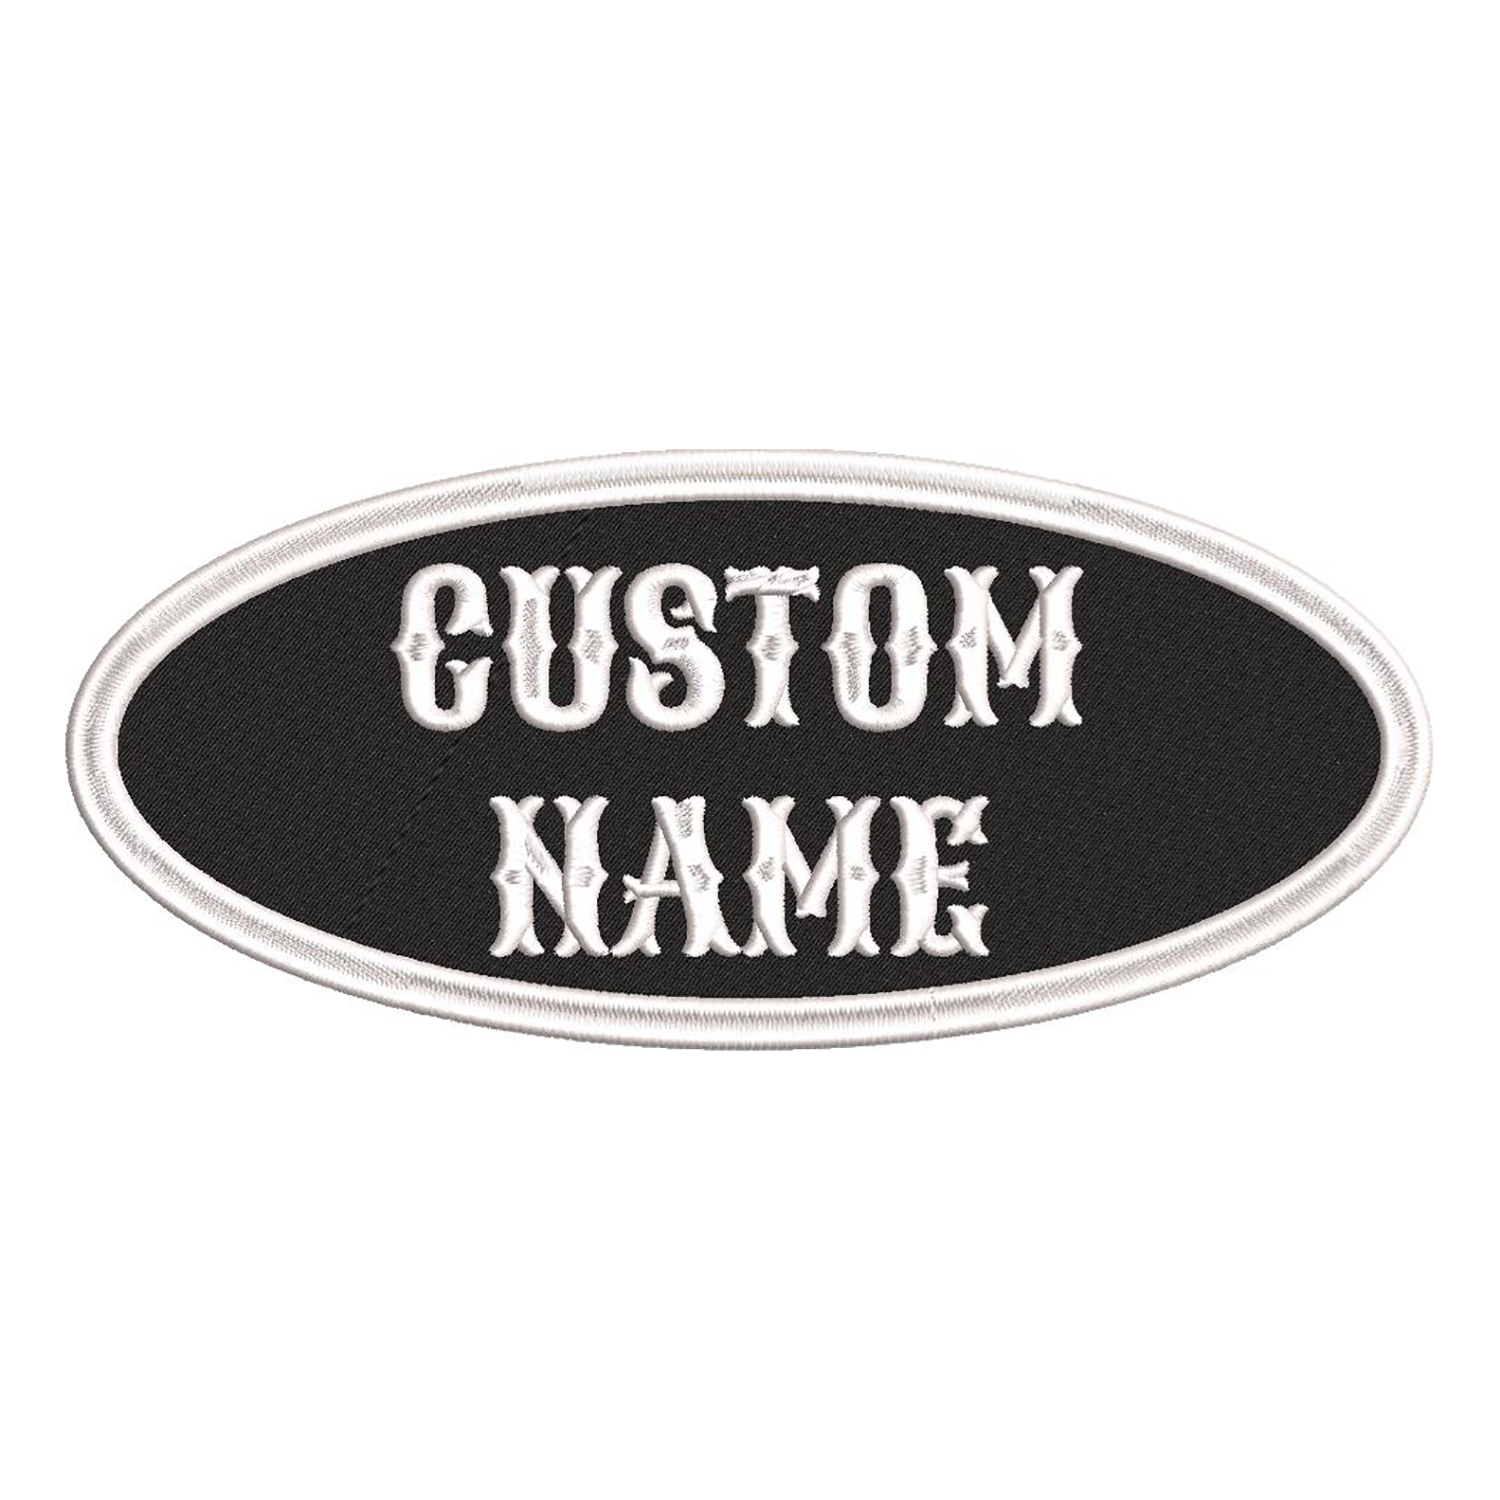 6 inches Oval Custom Embroidered Name Tag Biker Patch